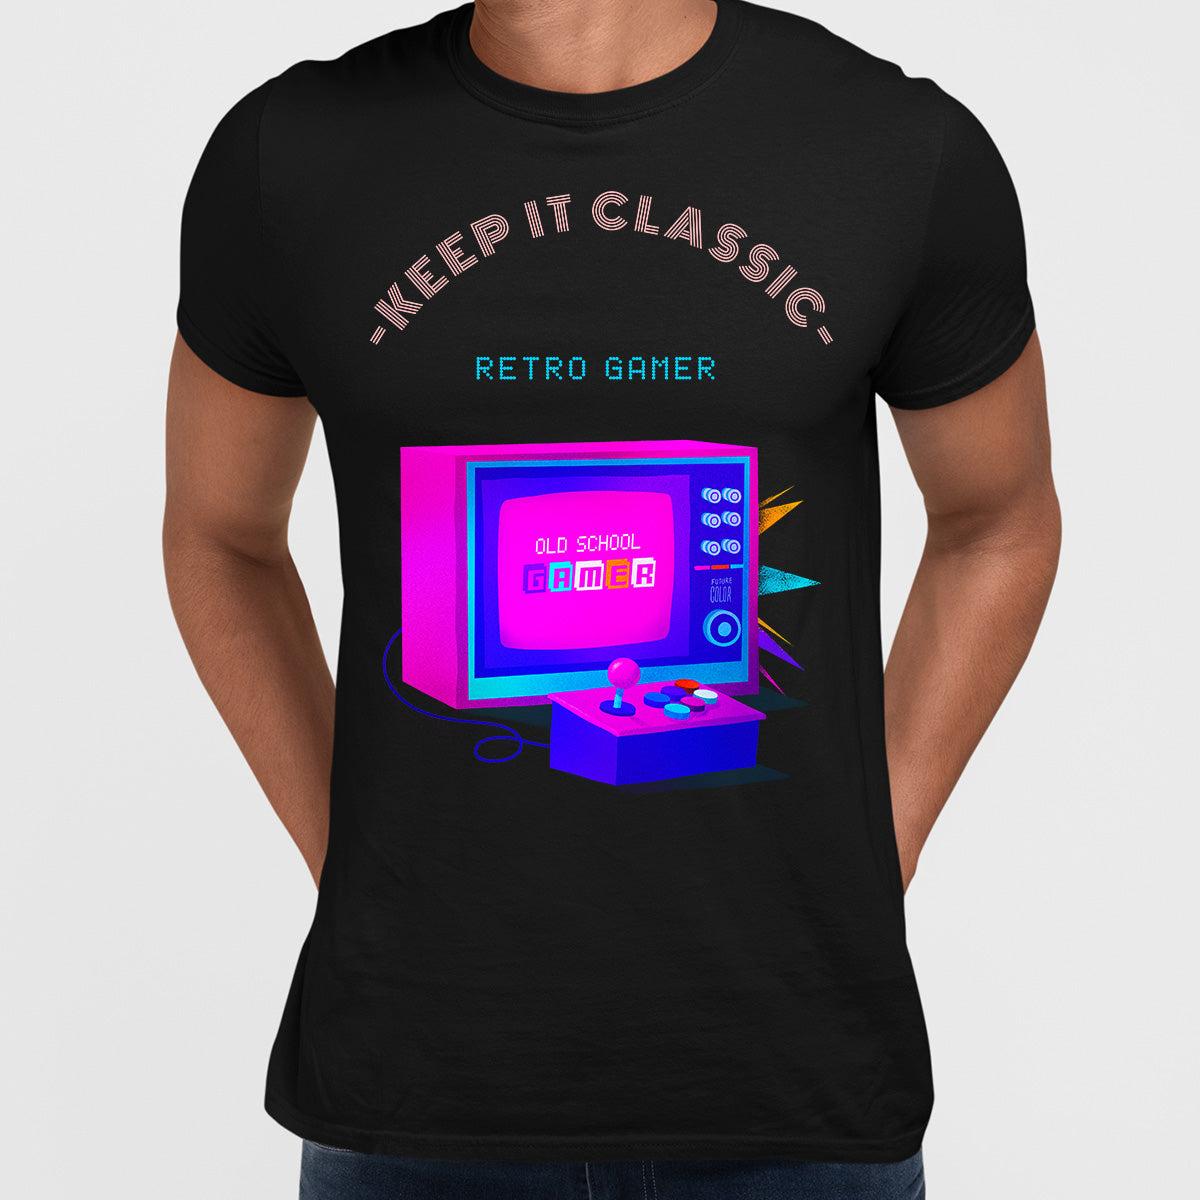 Keep it Classic - Retro Gamer Choose Wisely T-shirt Black